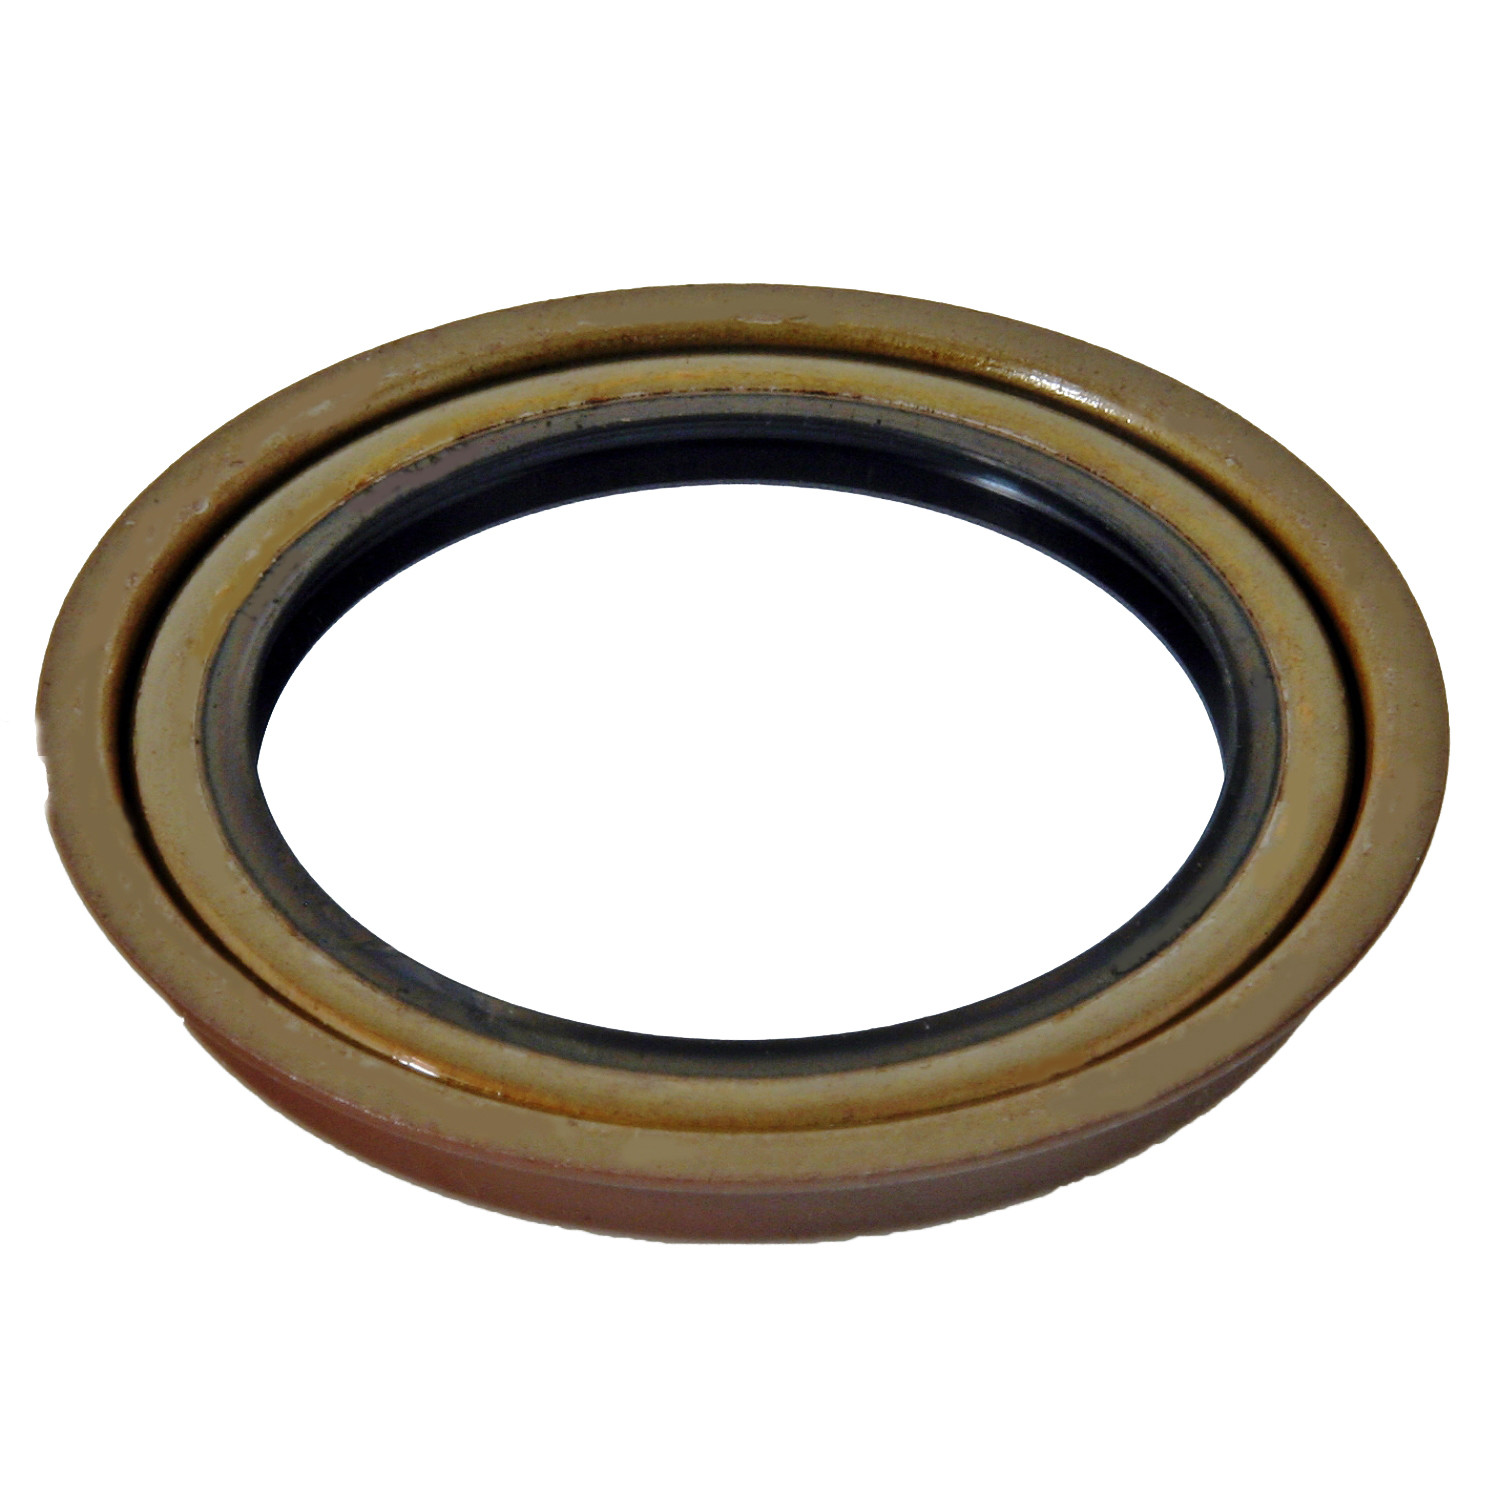 PRECISION AUTOMOTIVE INDUSTRIES - Wheel Seal - PAU 6815